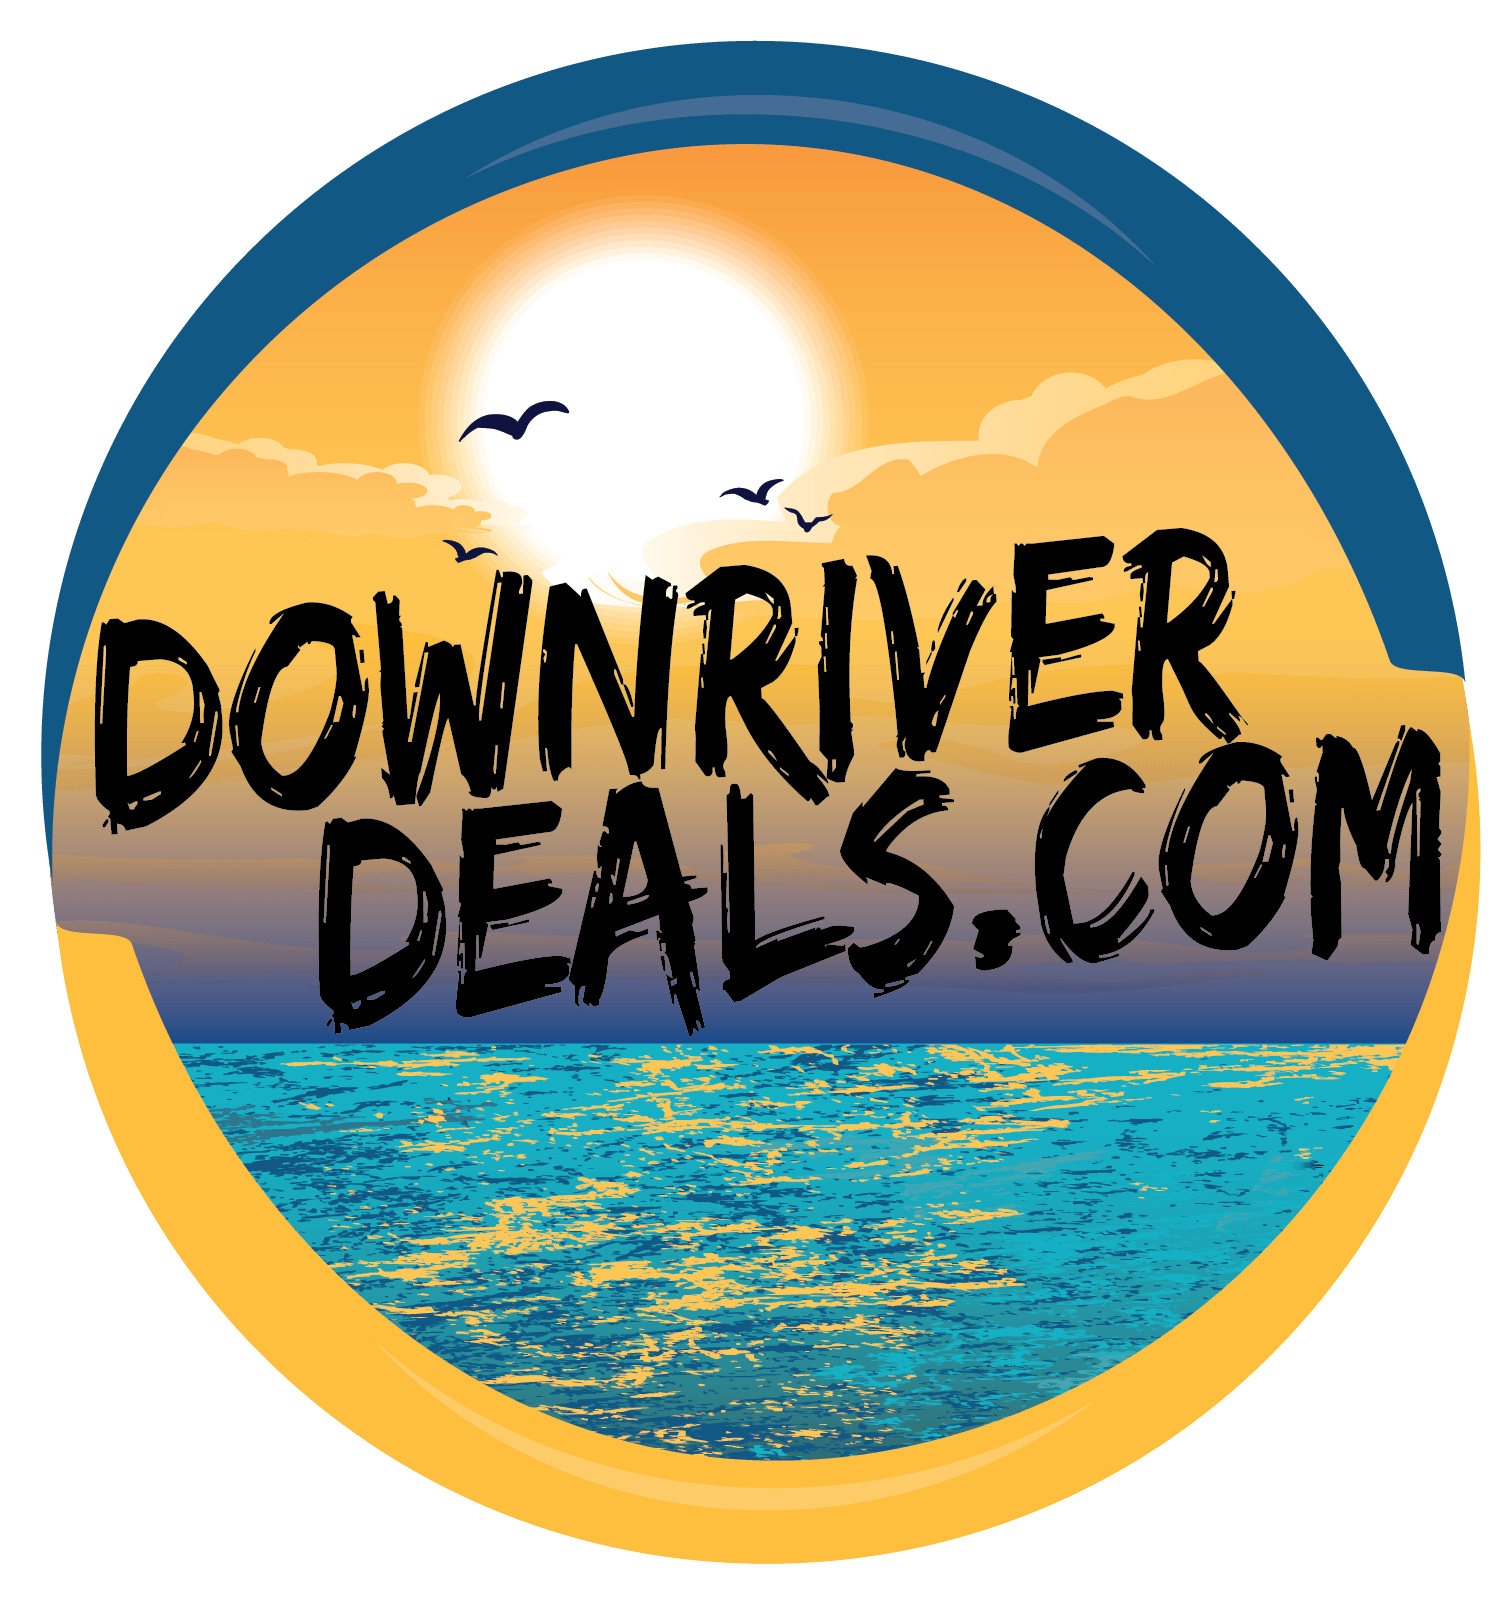 DownriverDeals.com